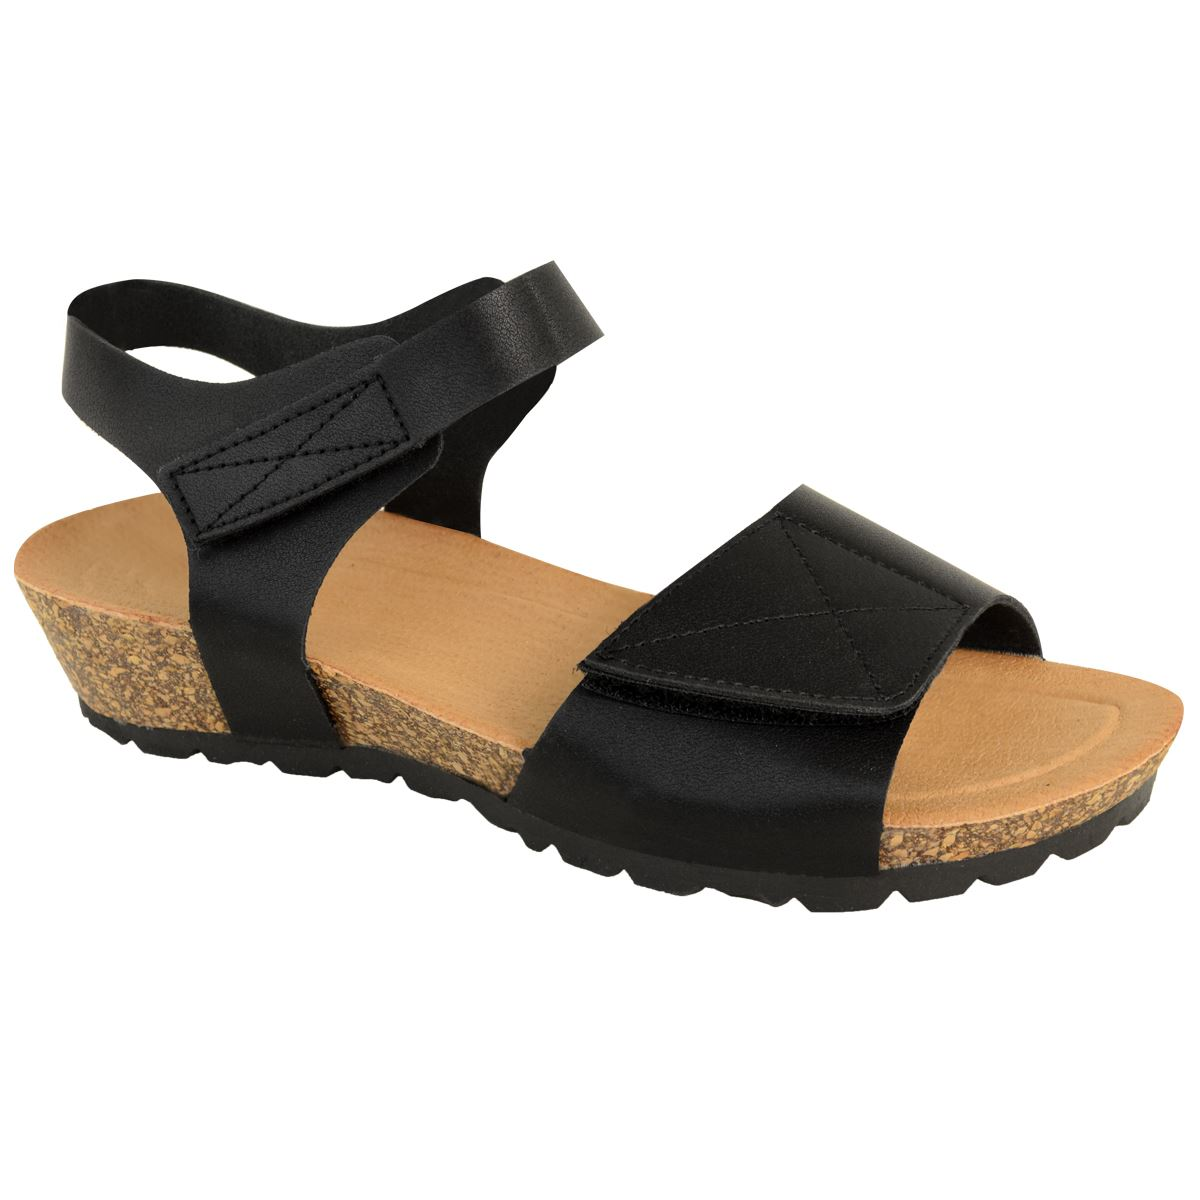 NEW LADIES WIDE FIT CUSHION COMFORT FLAT SANDALS ADJUSTABLE LOW WEDGE SLINGBACK